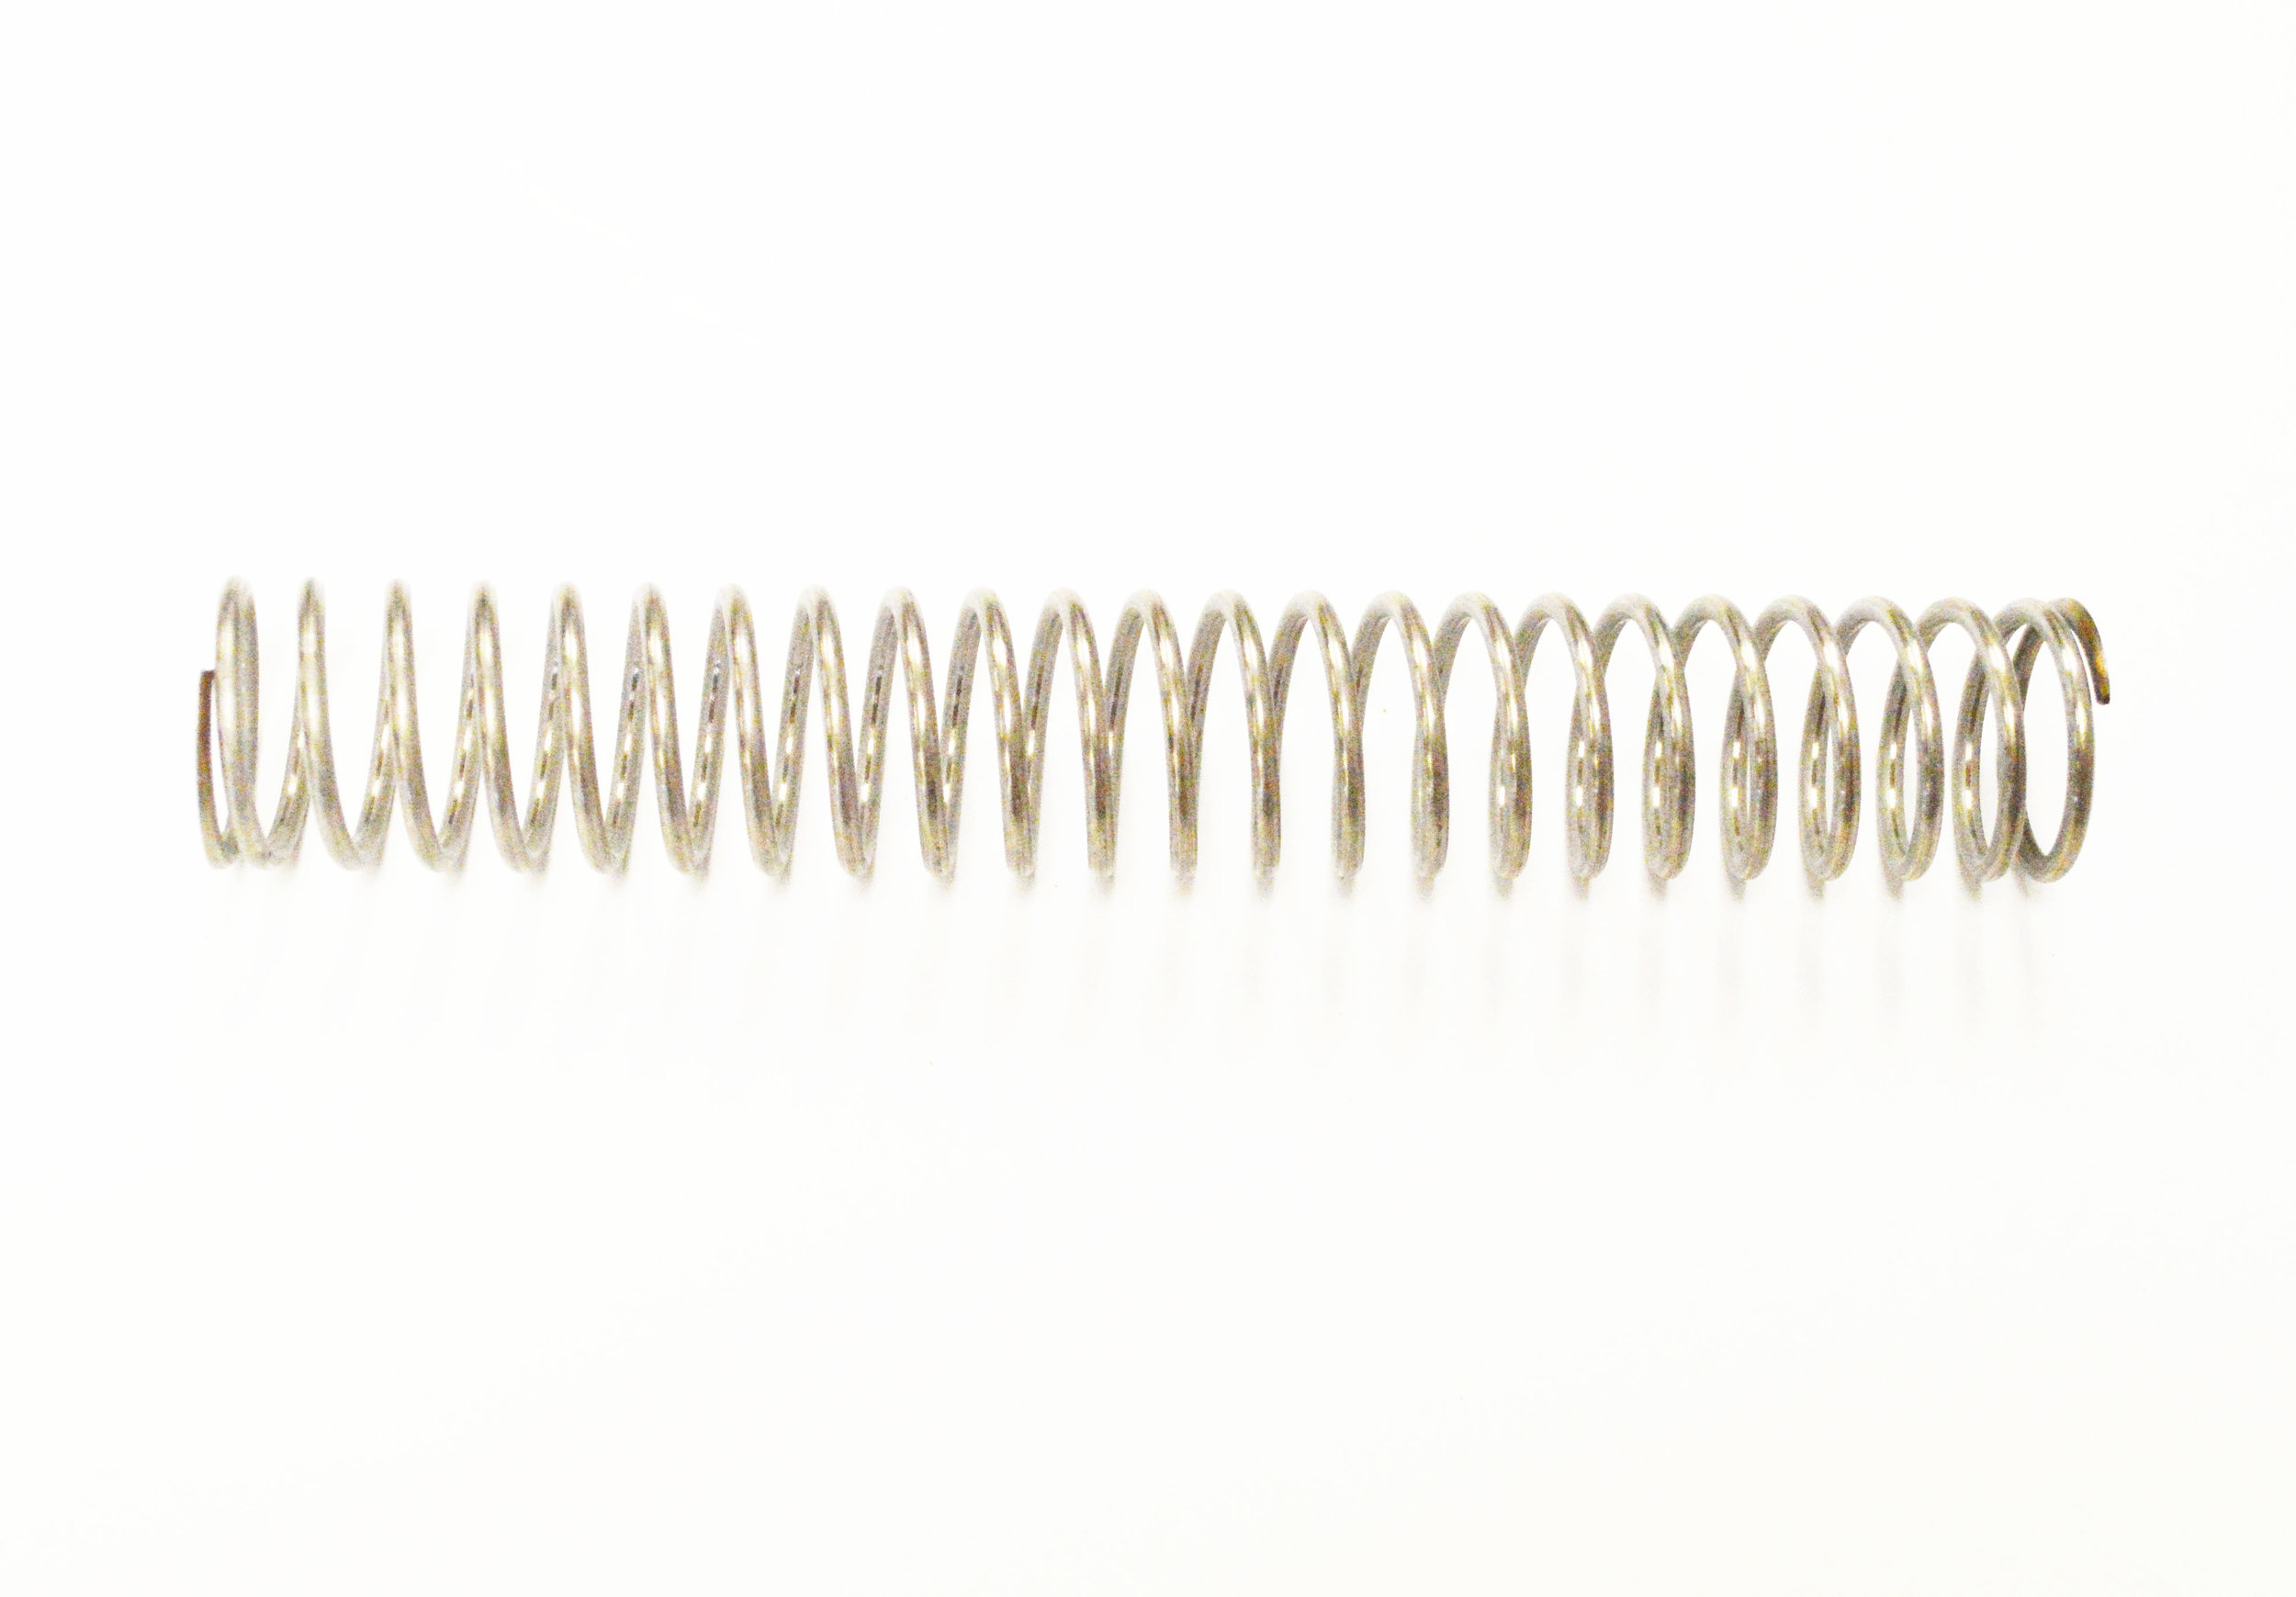 Main Lower End        Compression Spring         9 lbs: SMS-5140       15 lbs: SMS-5140-01